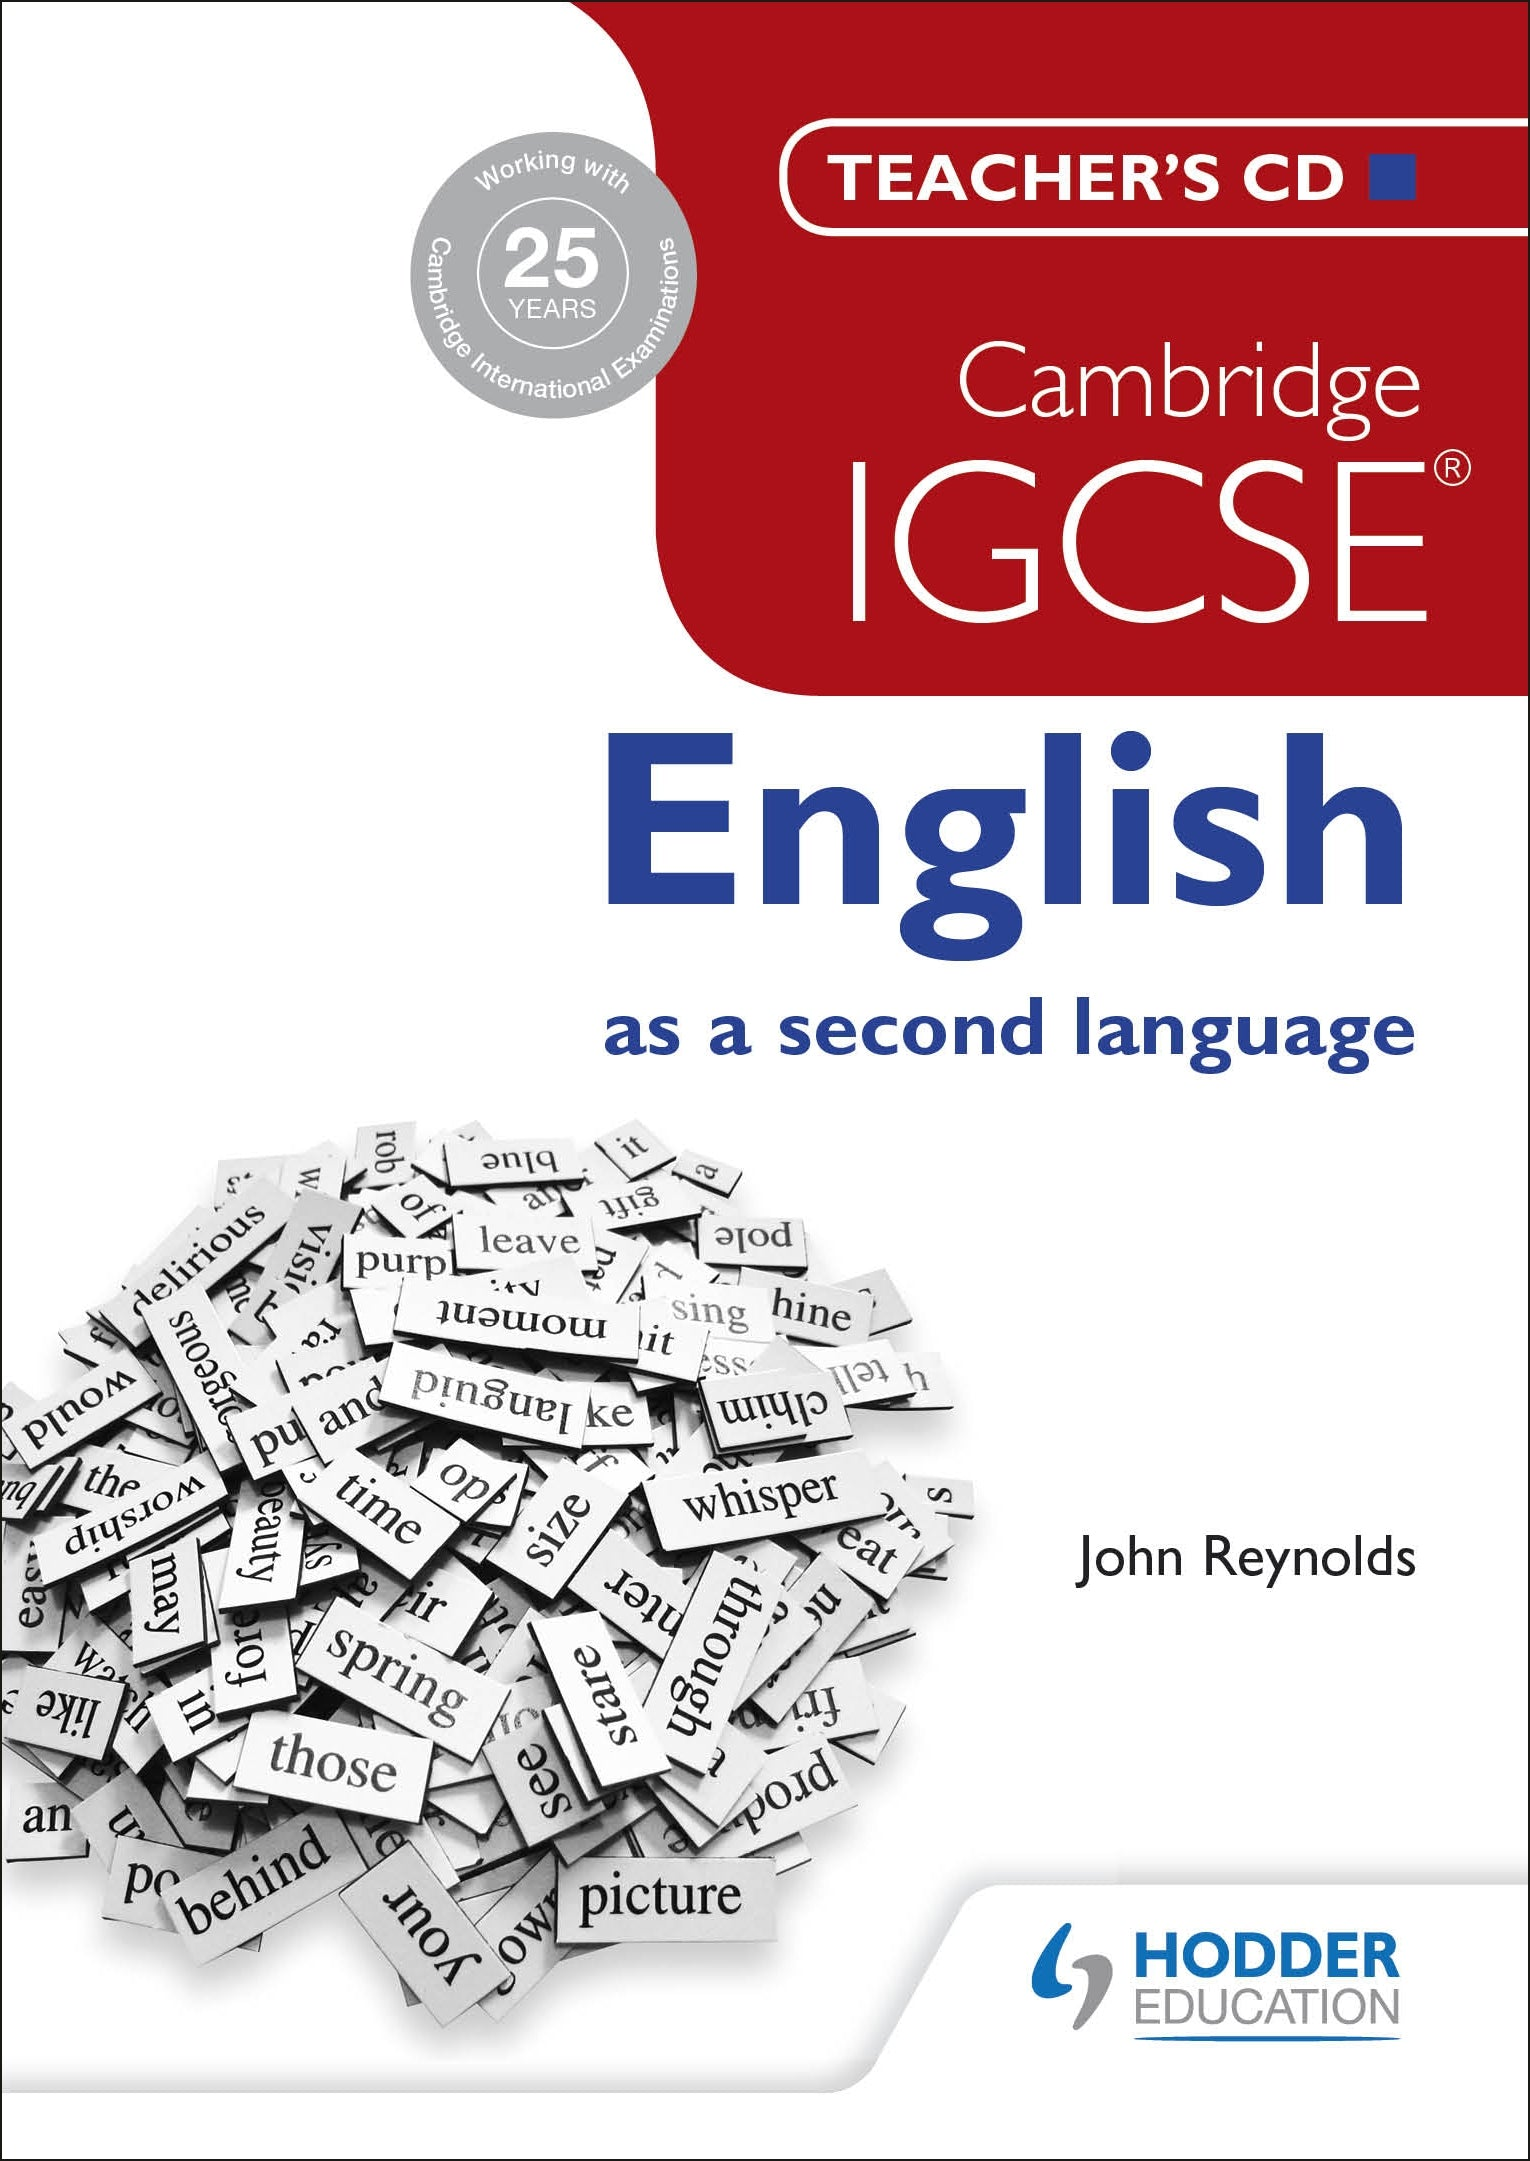 Upper Secondary English as a Second Language (IGCSE)